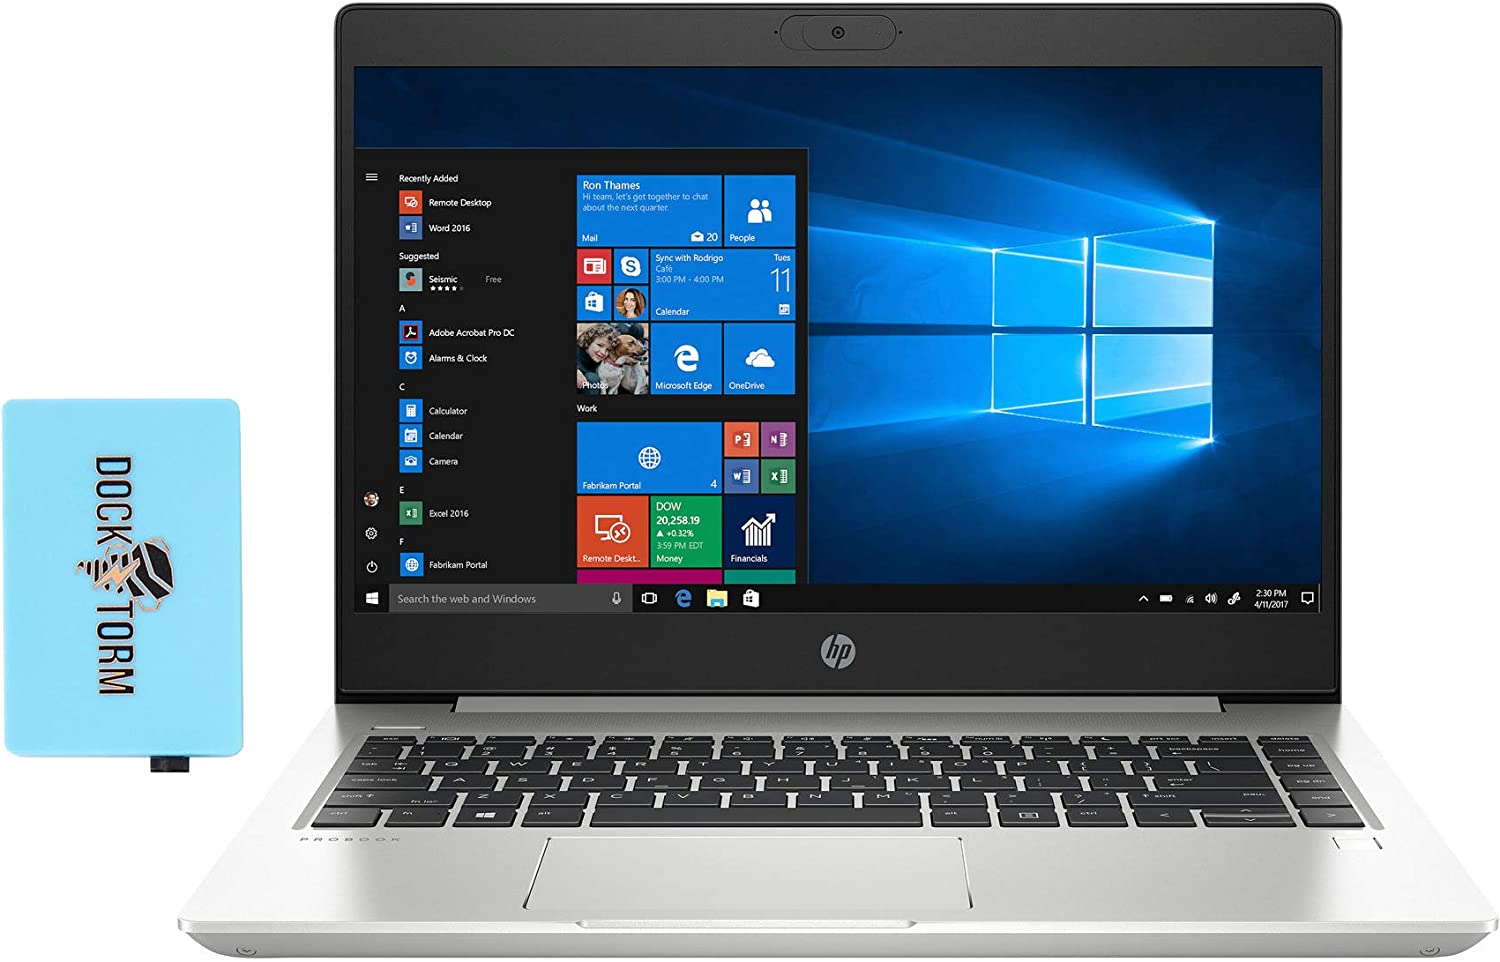 HP ProBook 440 G7 Home and Business Laptop (Intel i5-10210U 4-Core, 8GB RAM, 256GB PCIe SSD + 500GB HDD, Intel UHD 620, 14.0